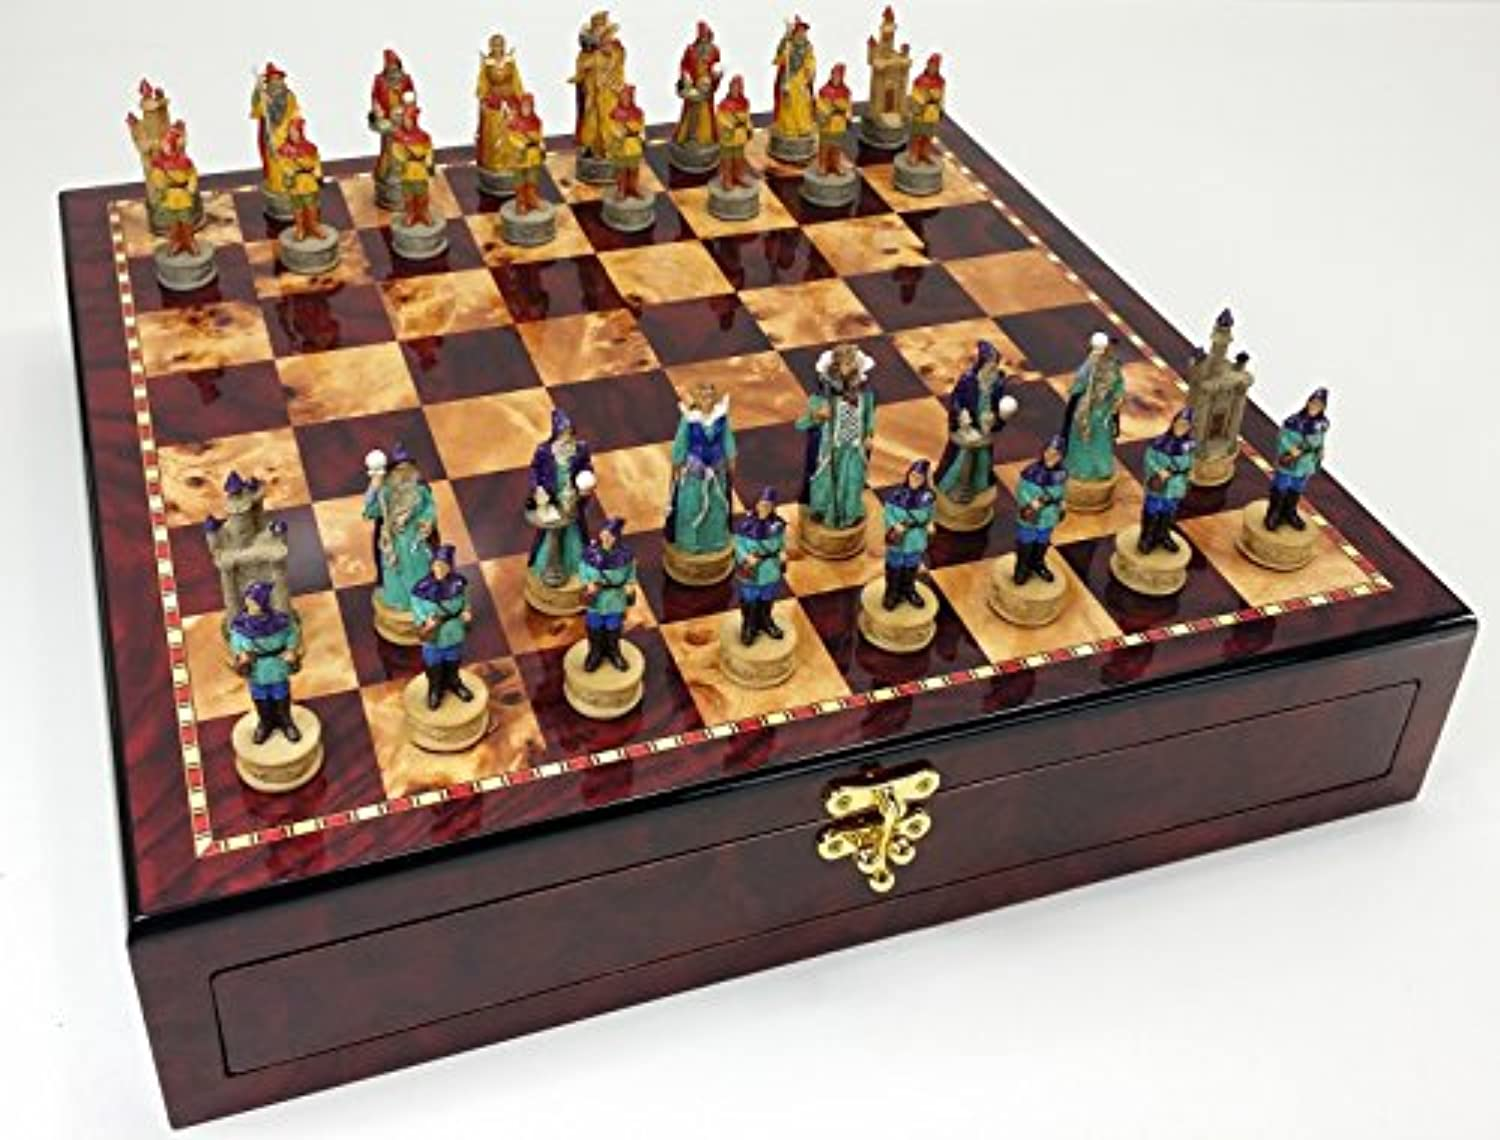 Medieval Times Fantasy Wizards vs Sorcerers Chess Set W/ High Gloss Cherry and Burlwood Color Storage Board 17